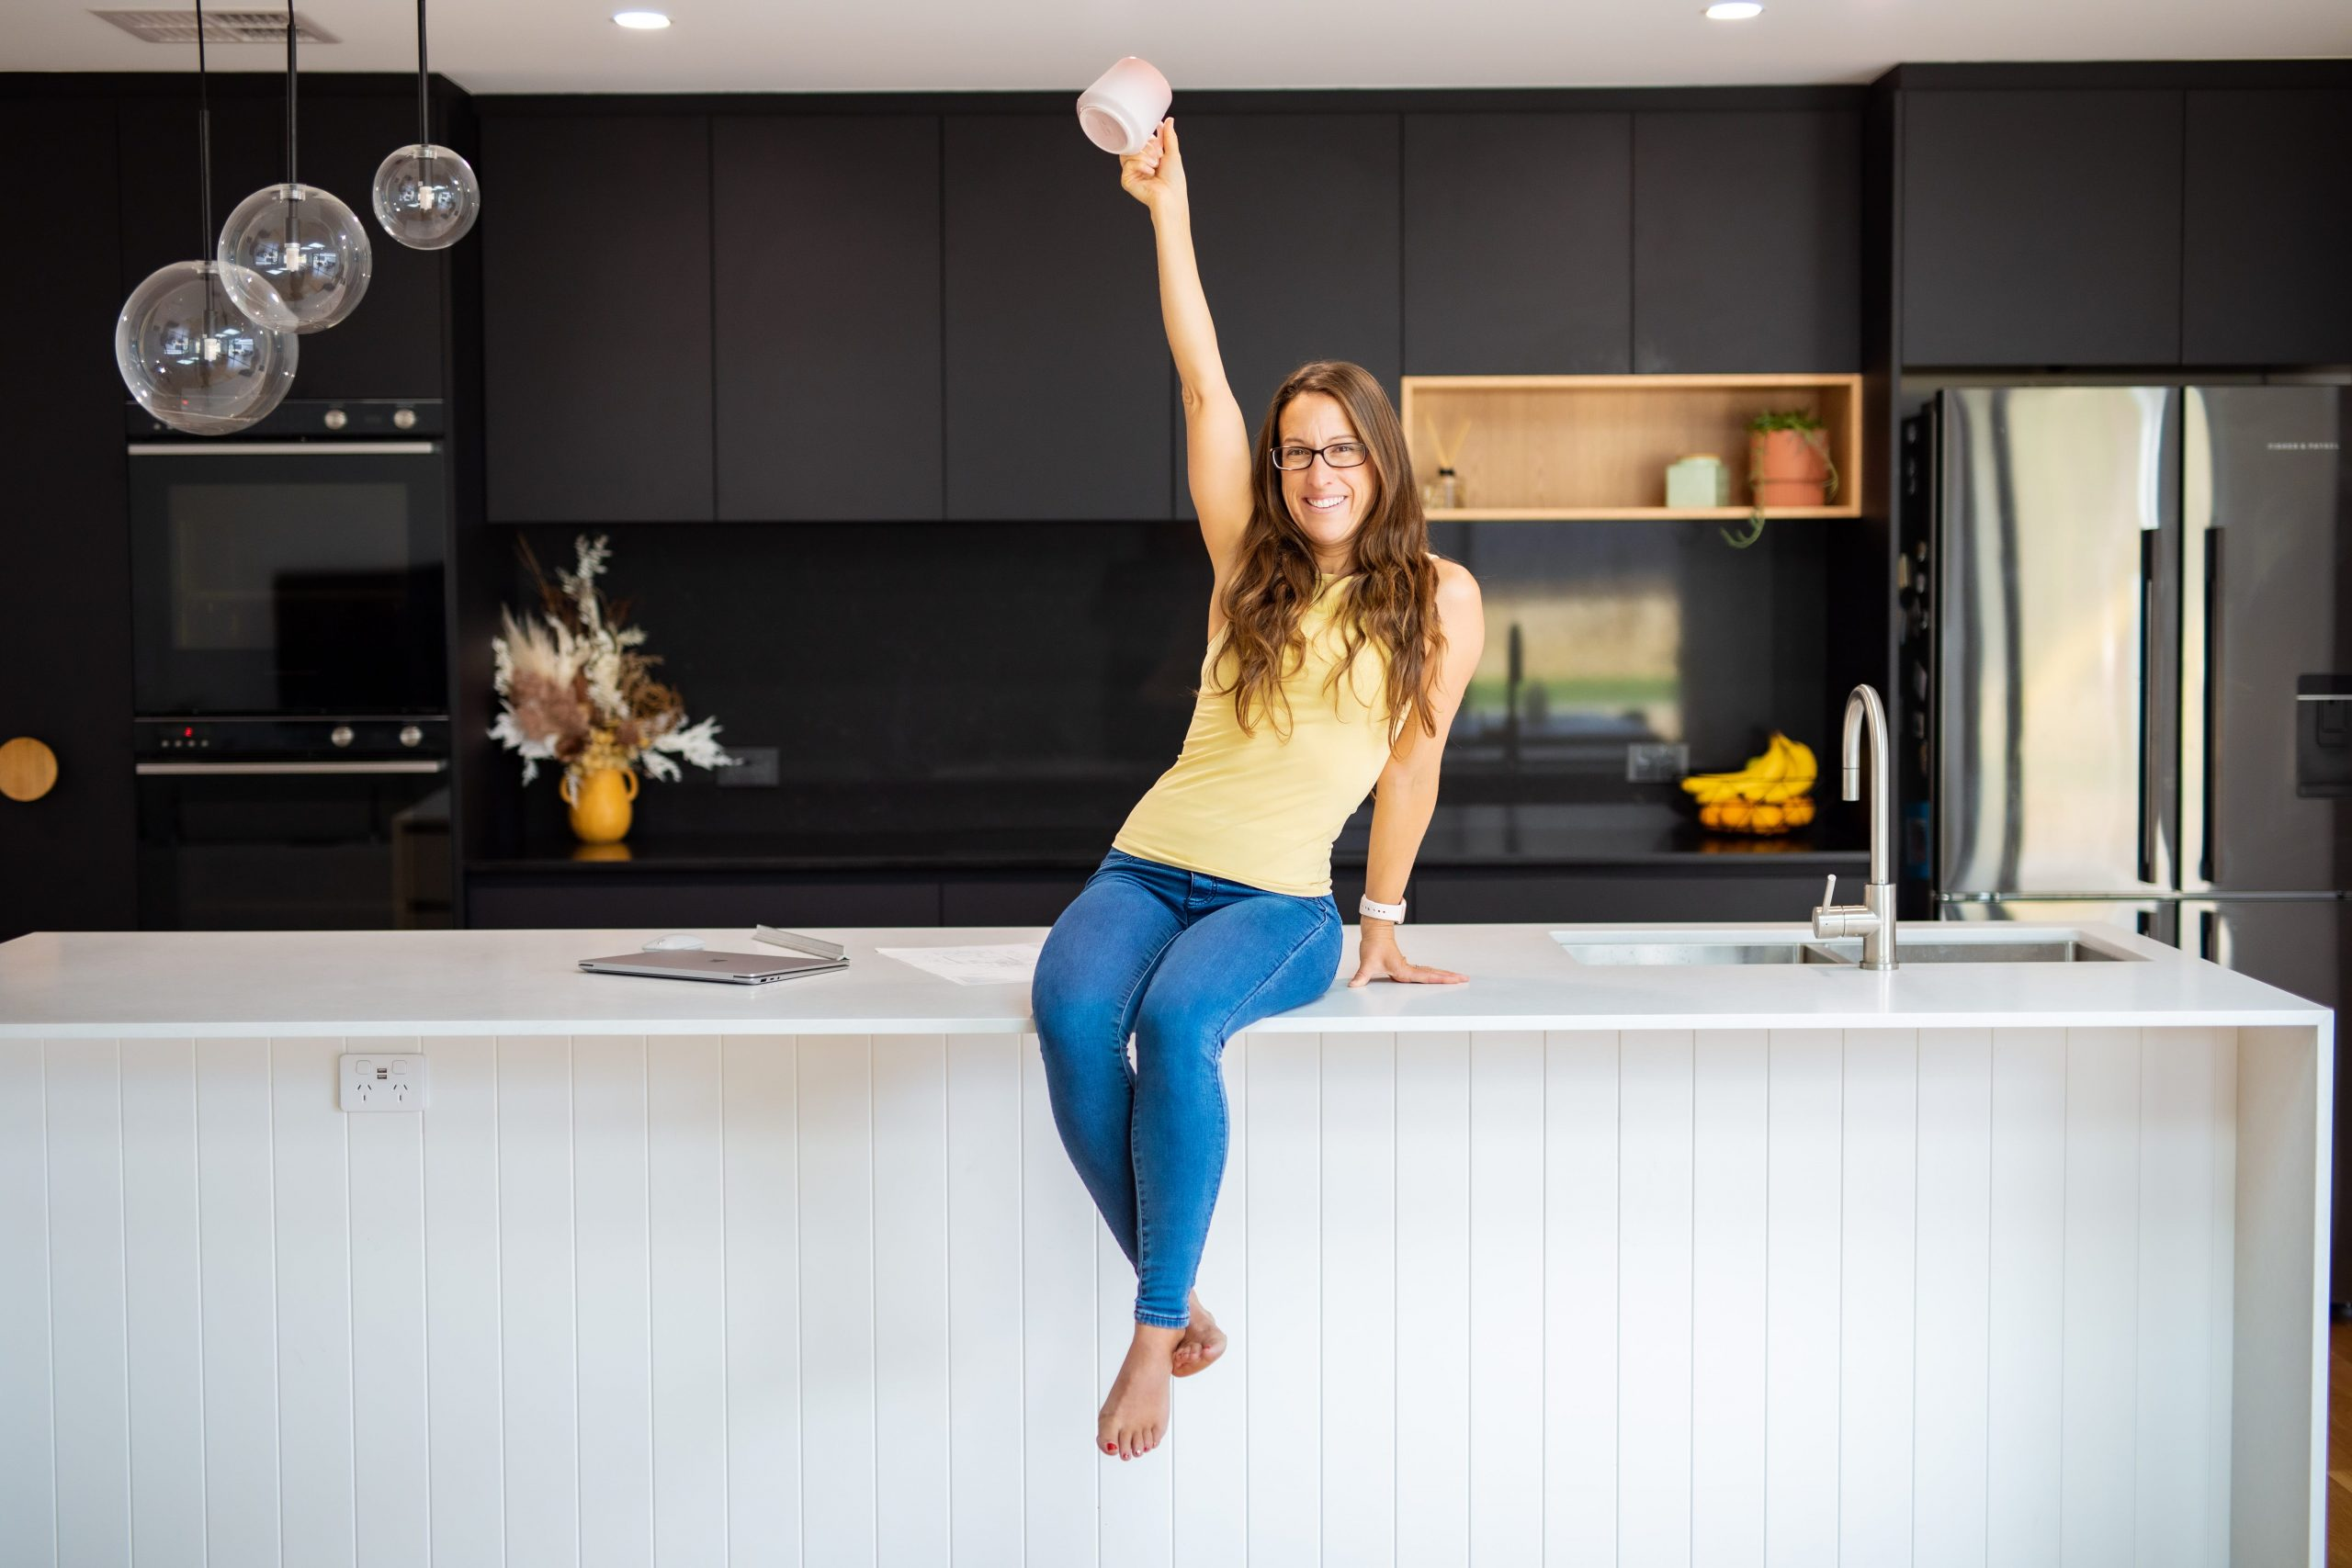 Woman sitting on kitchen table holding mug in the air posing for personal branding photography